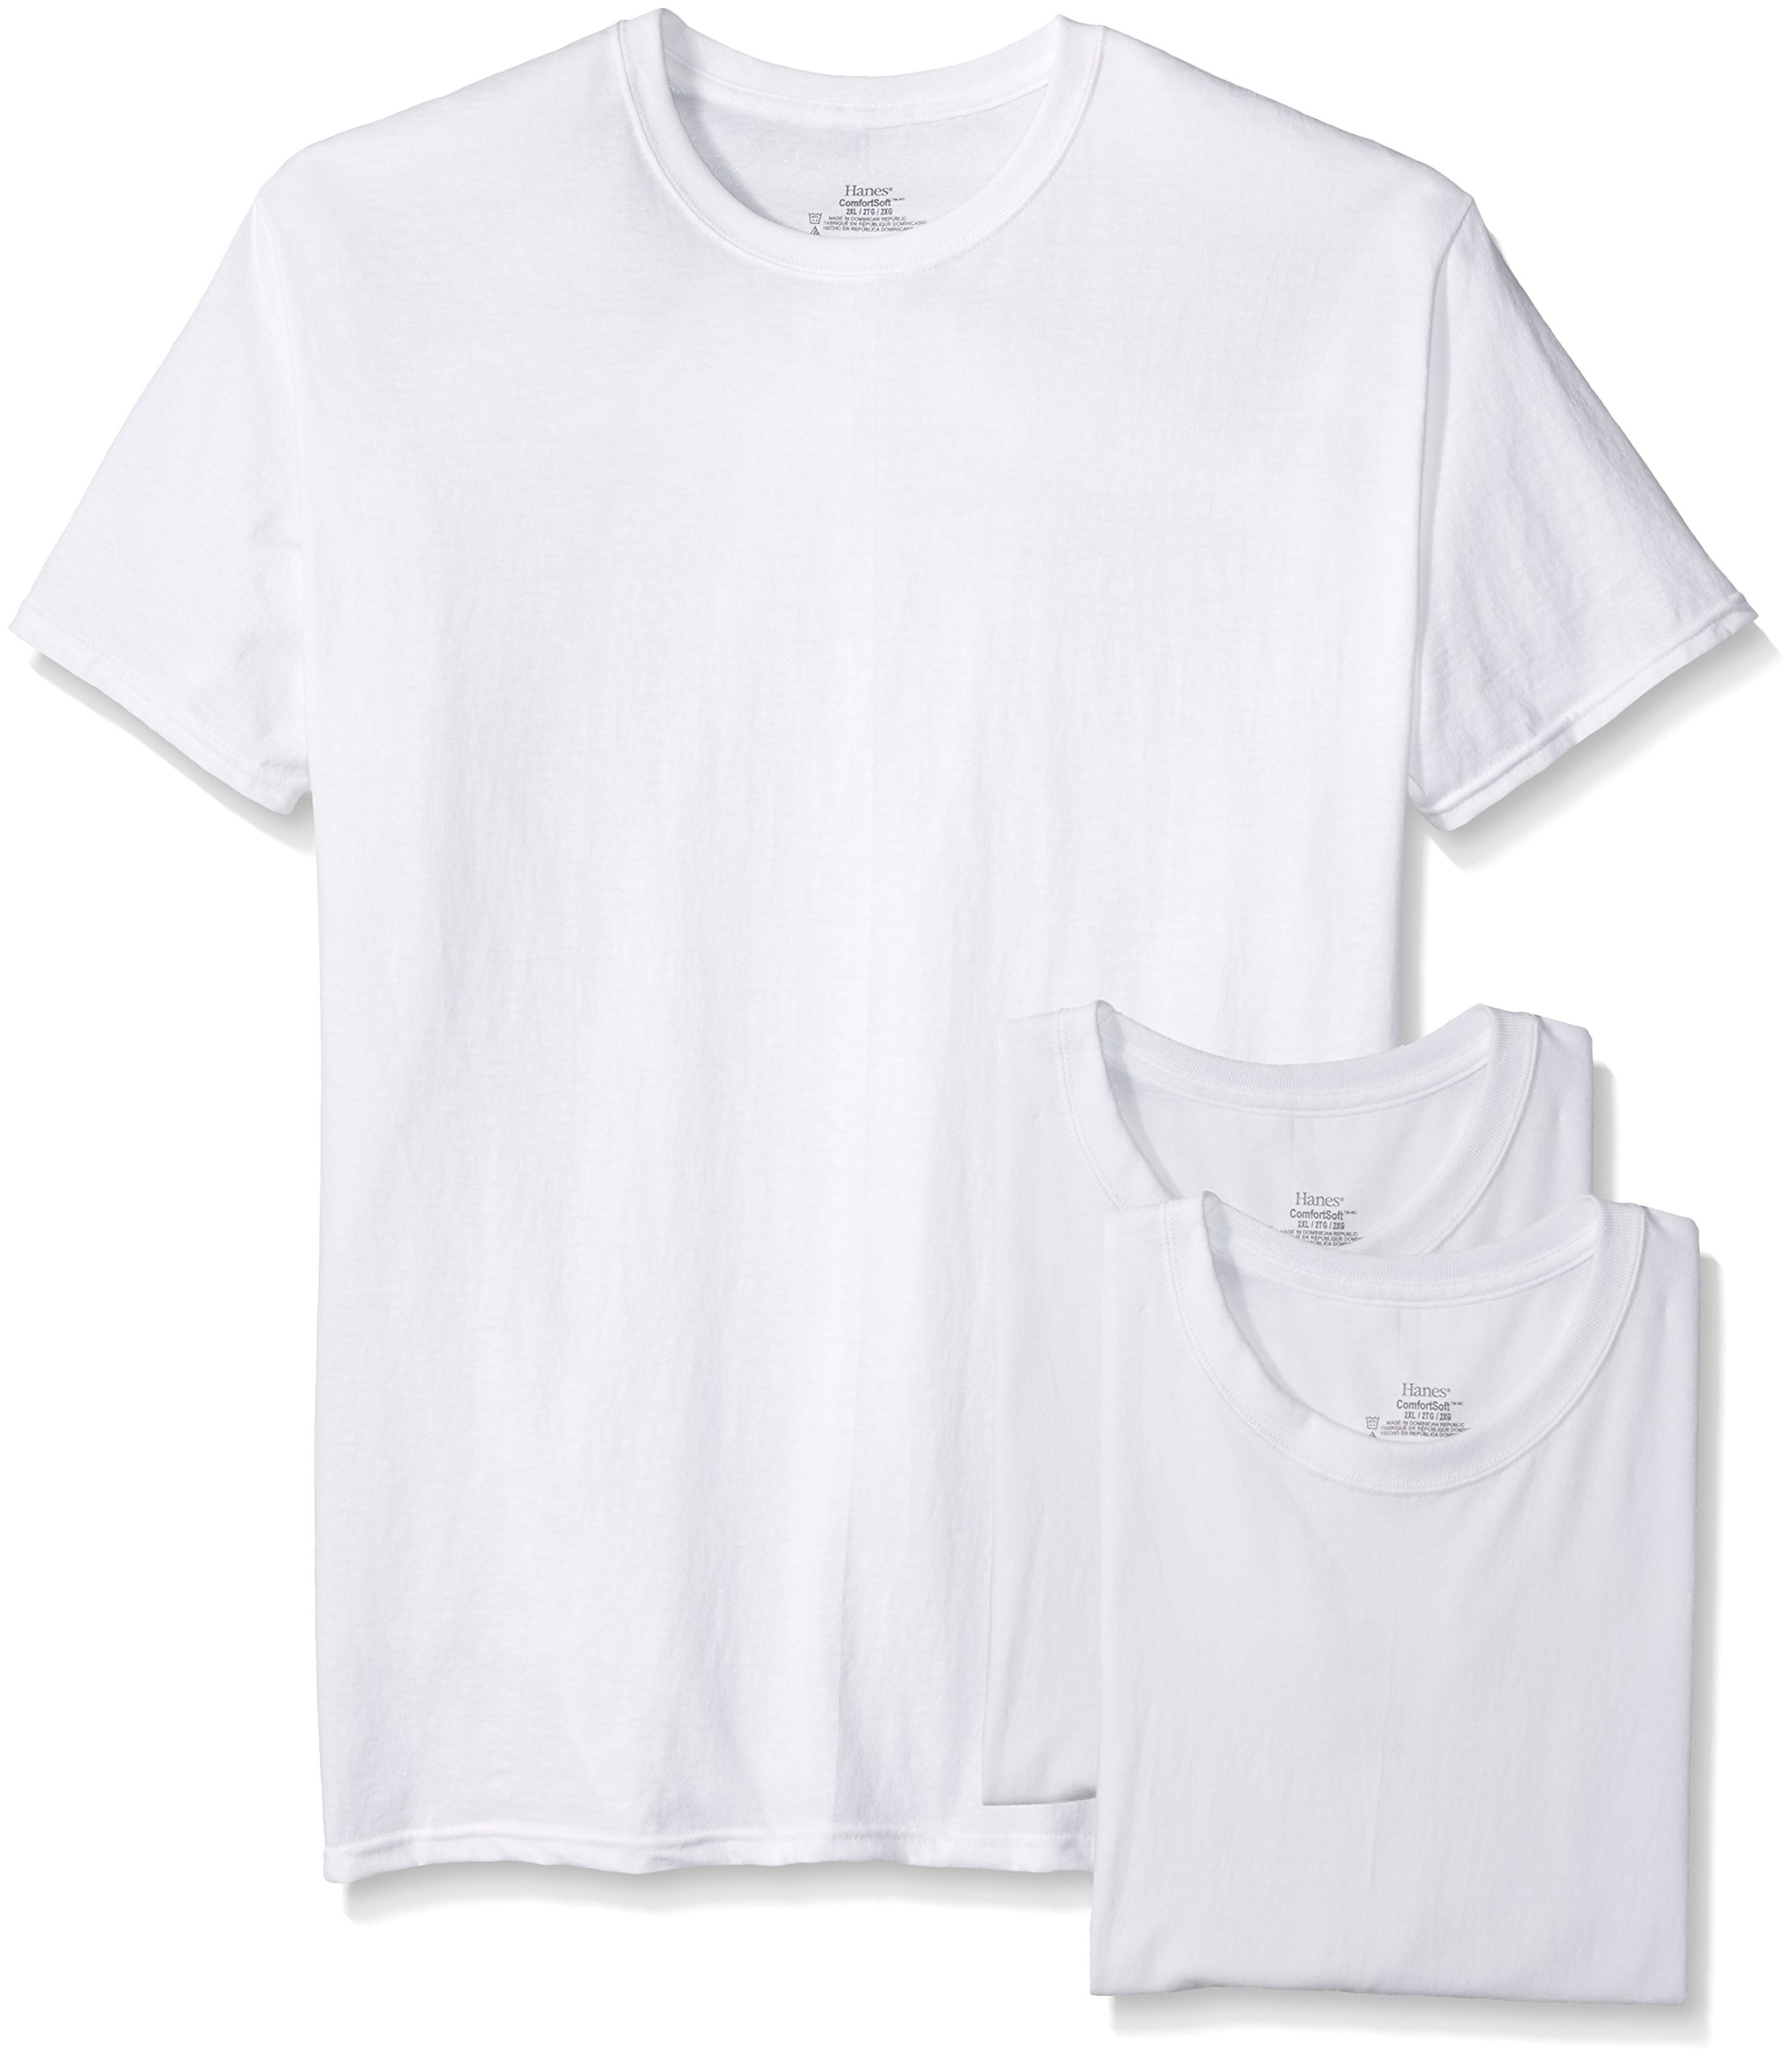 3 Cotton Hanes® T-shirts White, M